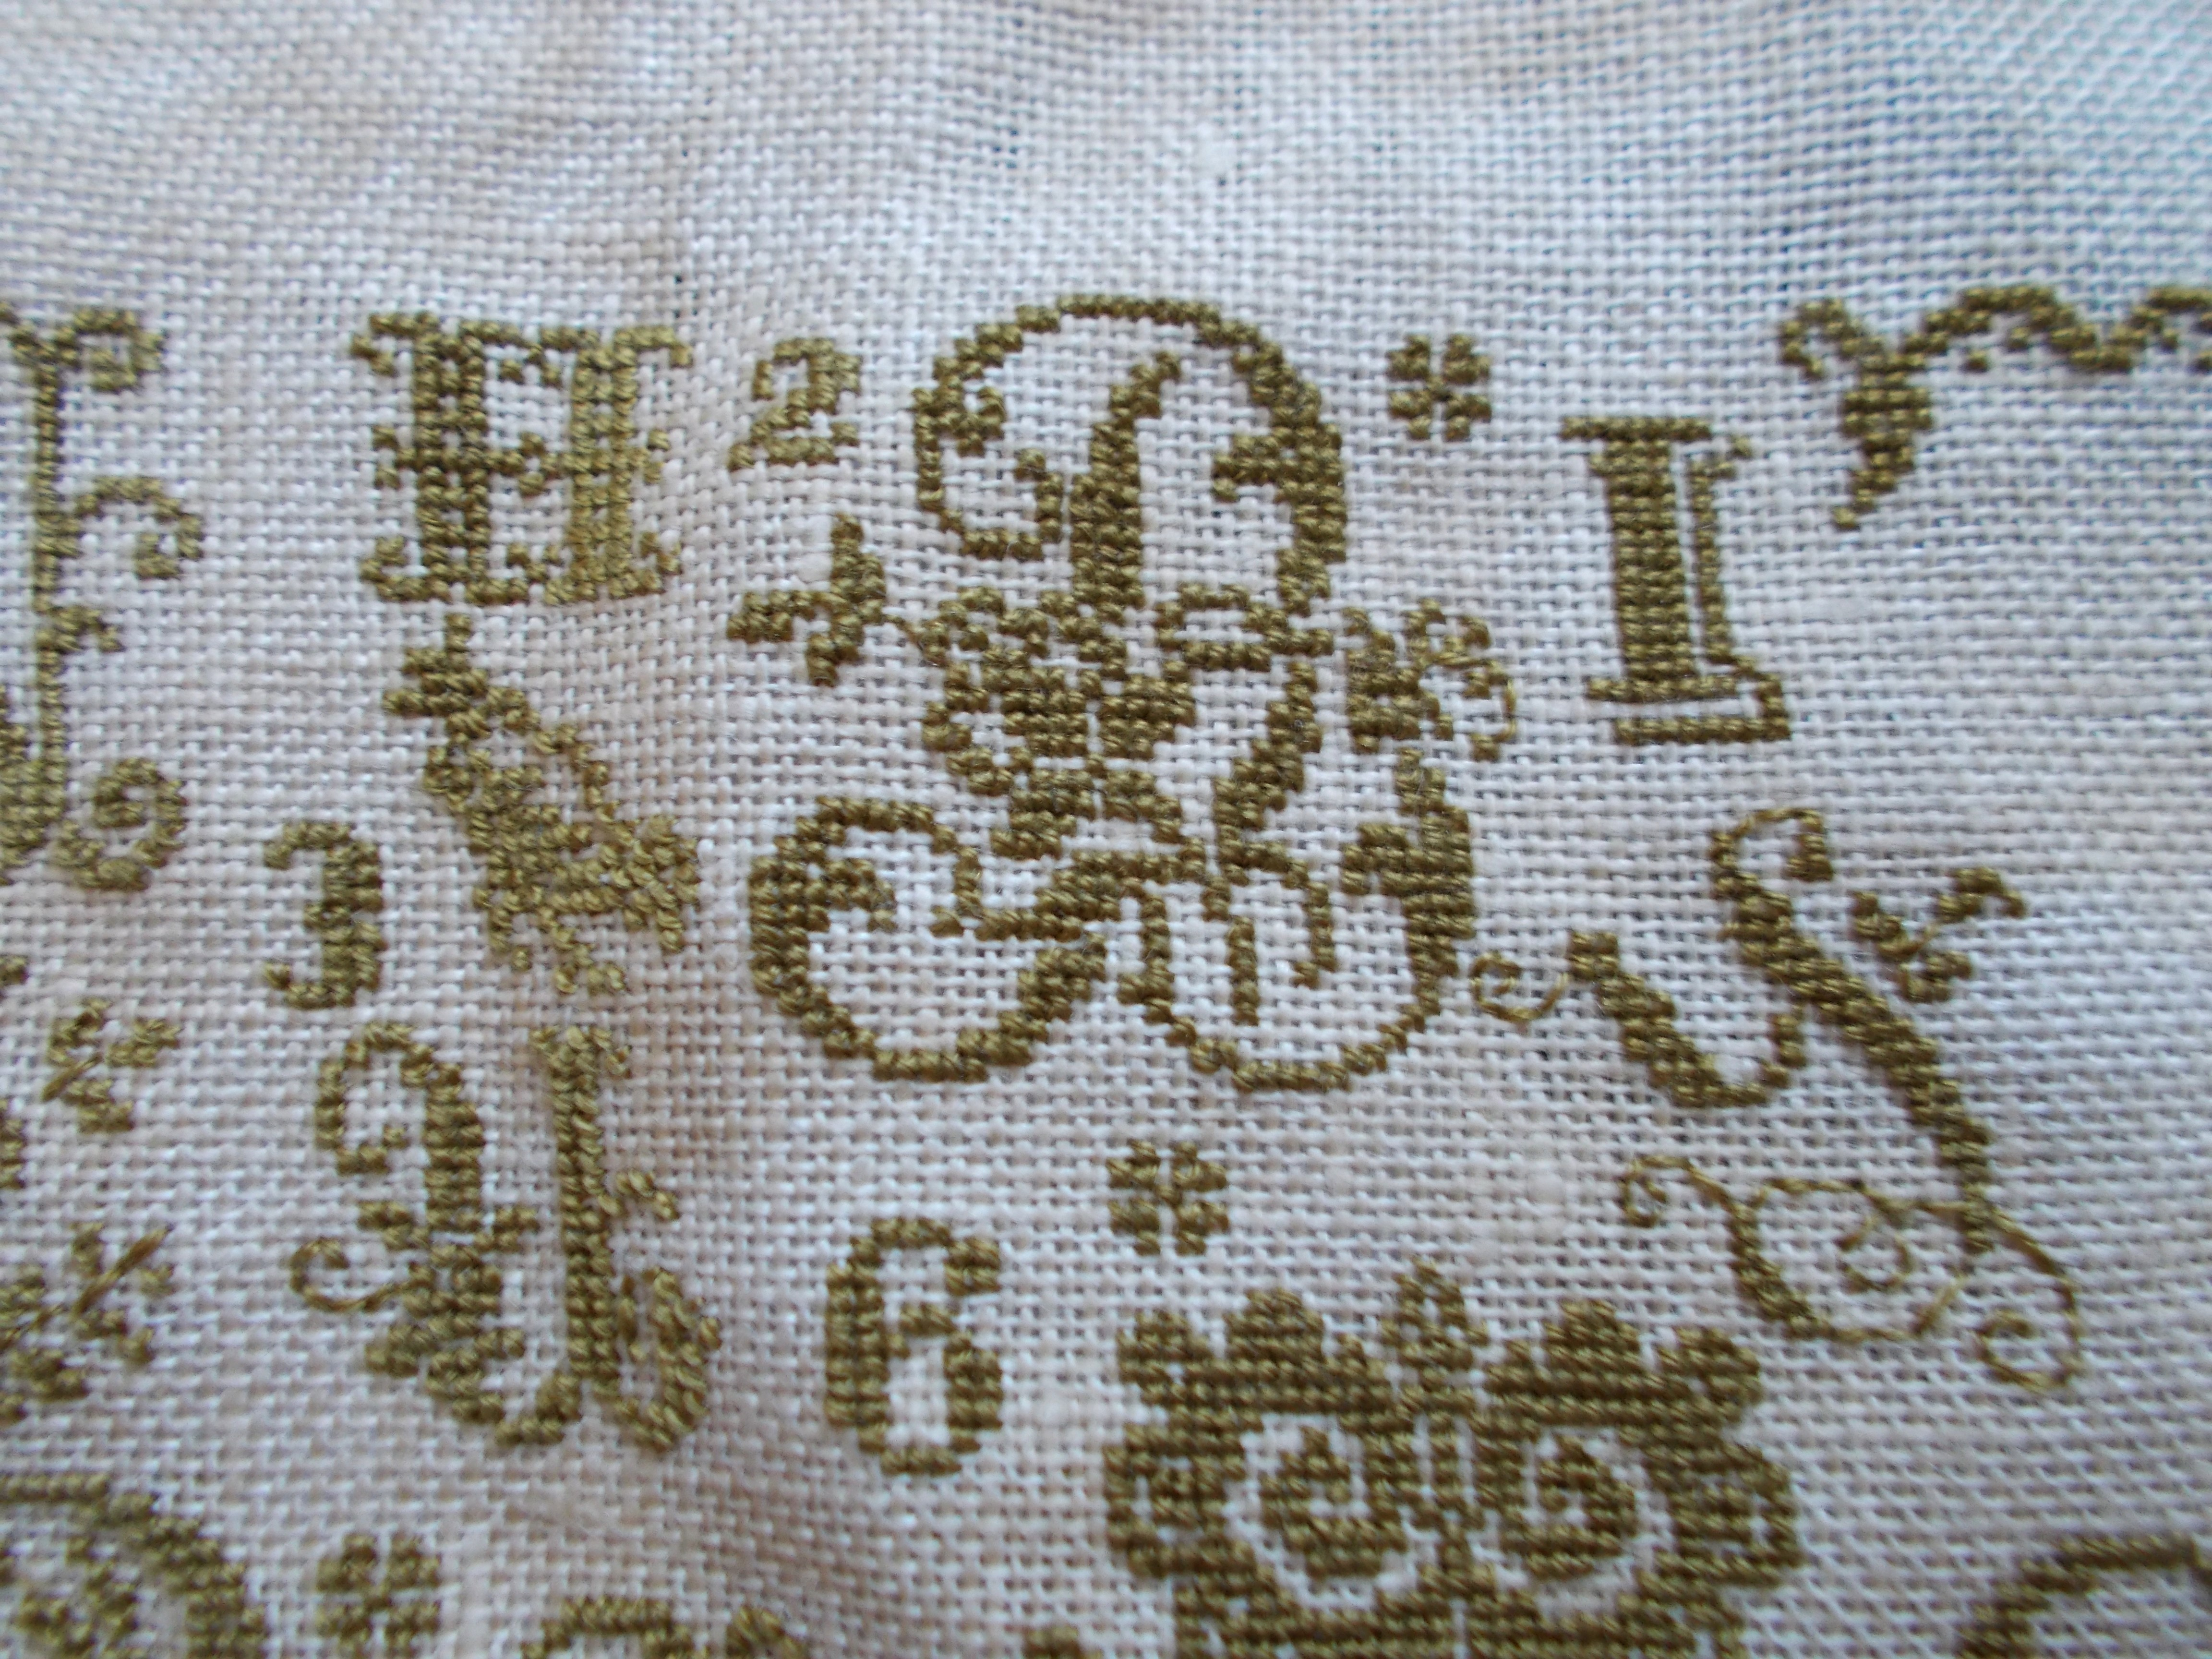 histoire de lin, ABC de printemps, cross stitch (5)